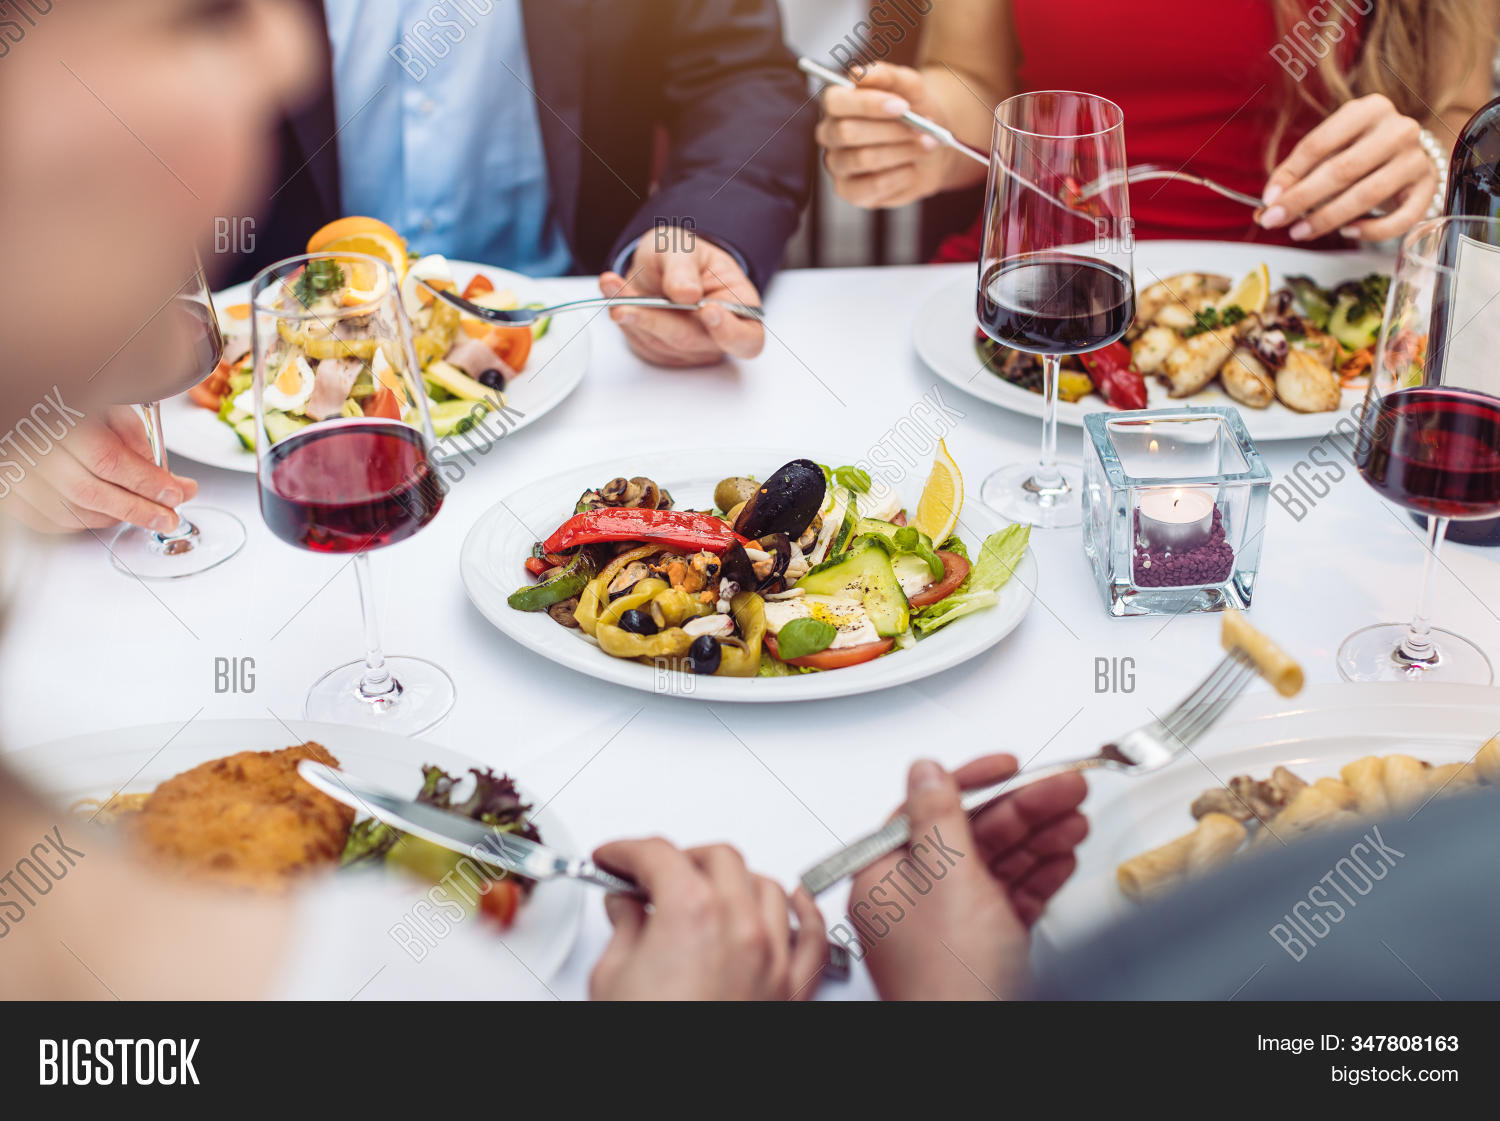 Four Friends Eating Image Photo Free Trial Bigstock